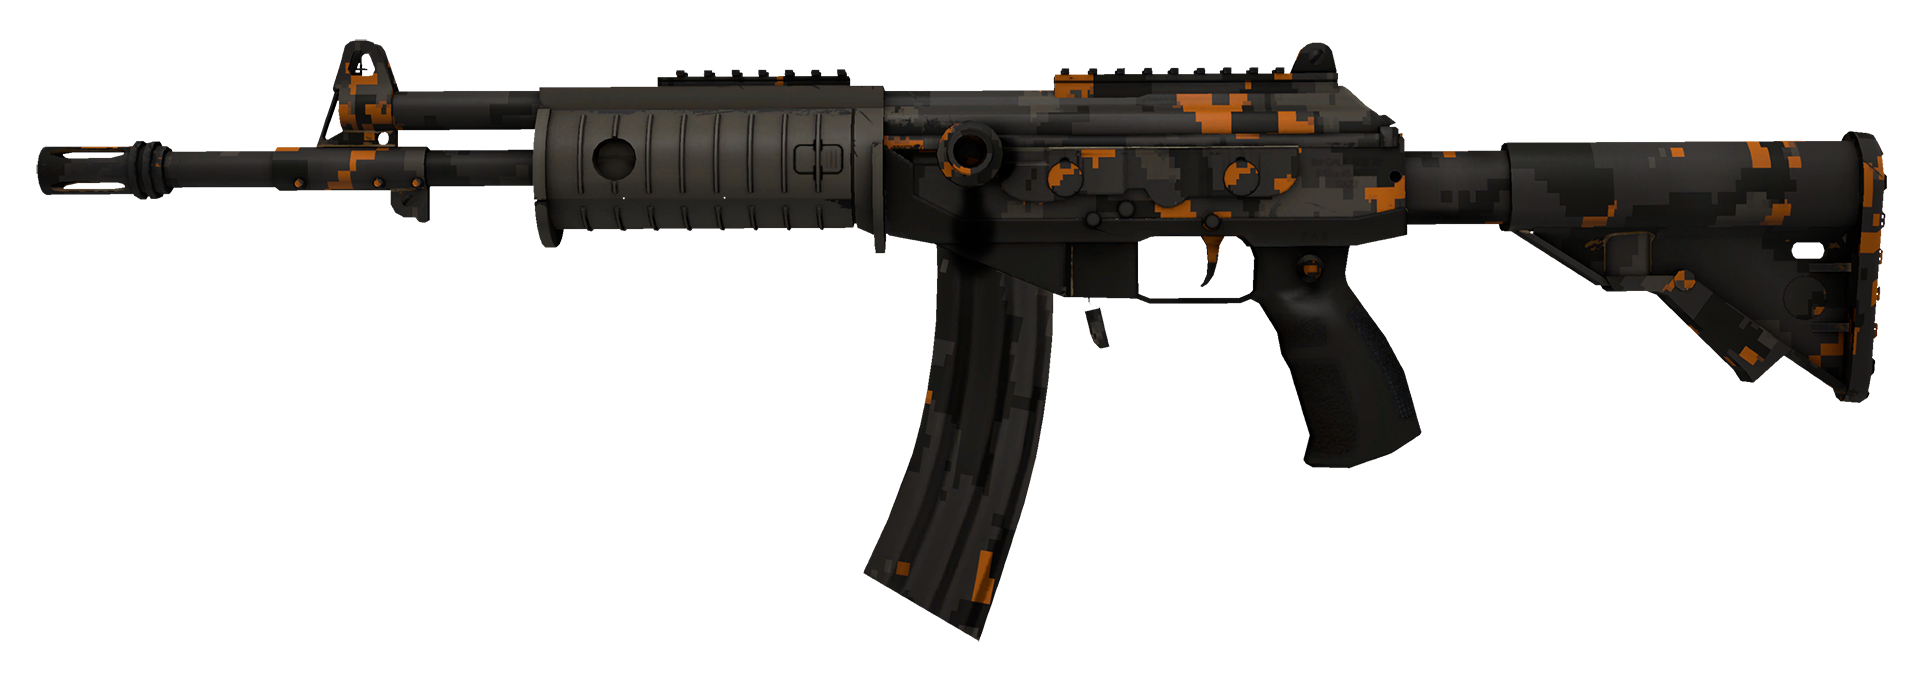 Galil AR Orange DDPAT Large Rendering